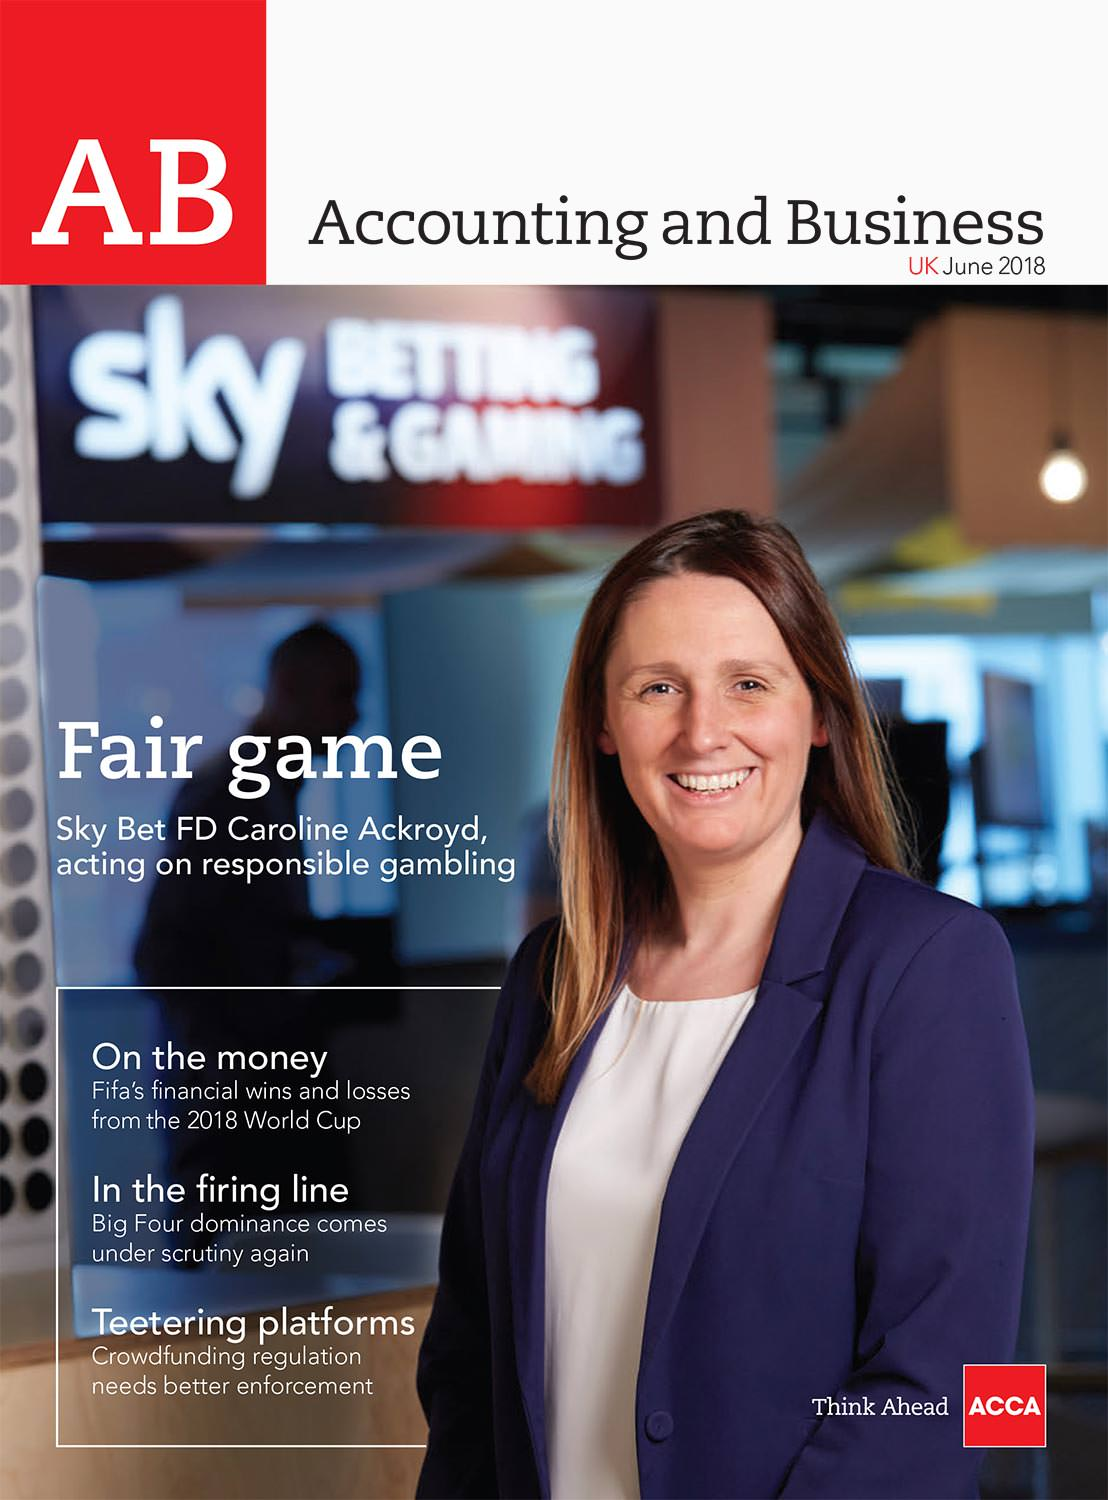 caroline-ackroyd-for-accountancy-and-business-magazine-00.jpg